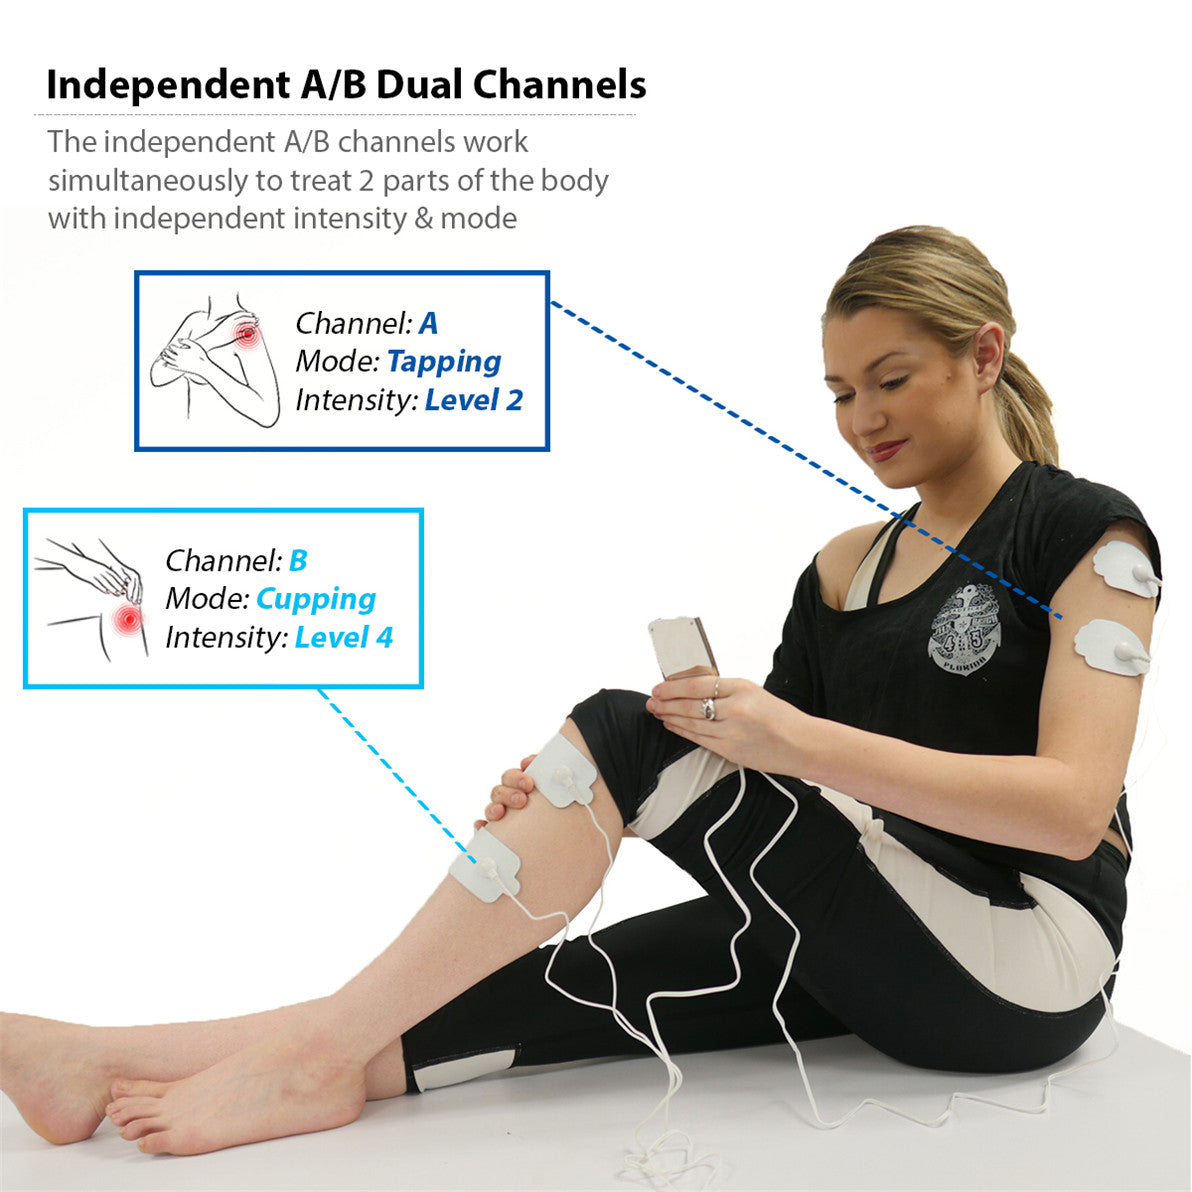 T24AB FDA Cleared 24 mode Touch Screen Pain Relief TENS UNIT